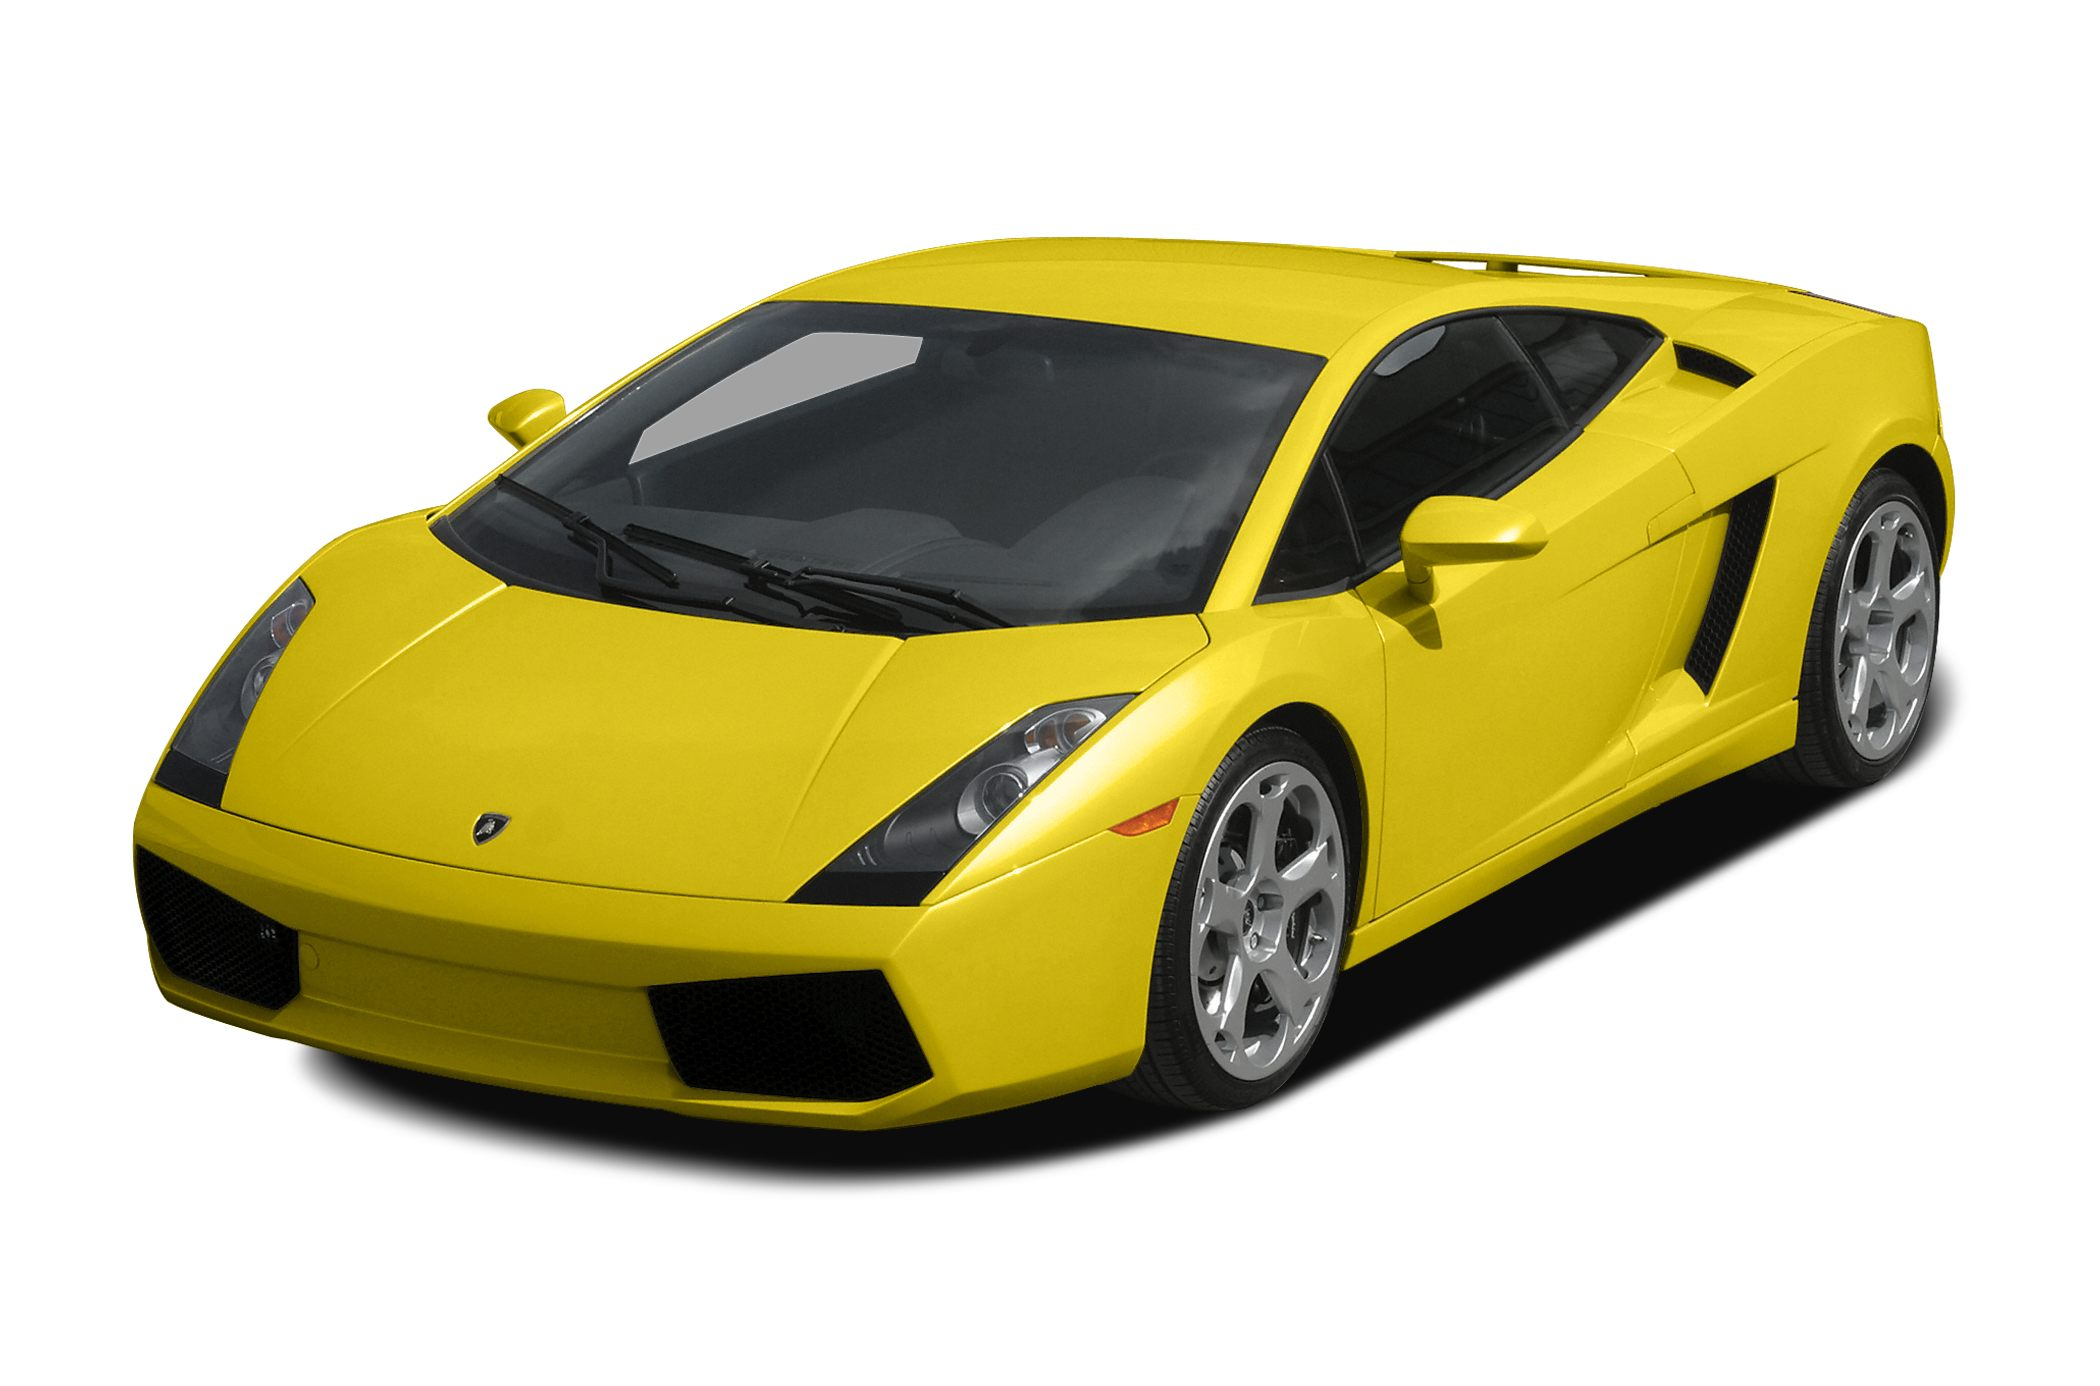 2008 Lamborghini Gallardo